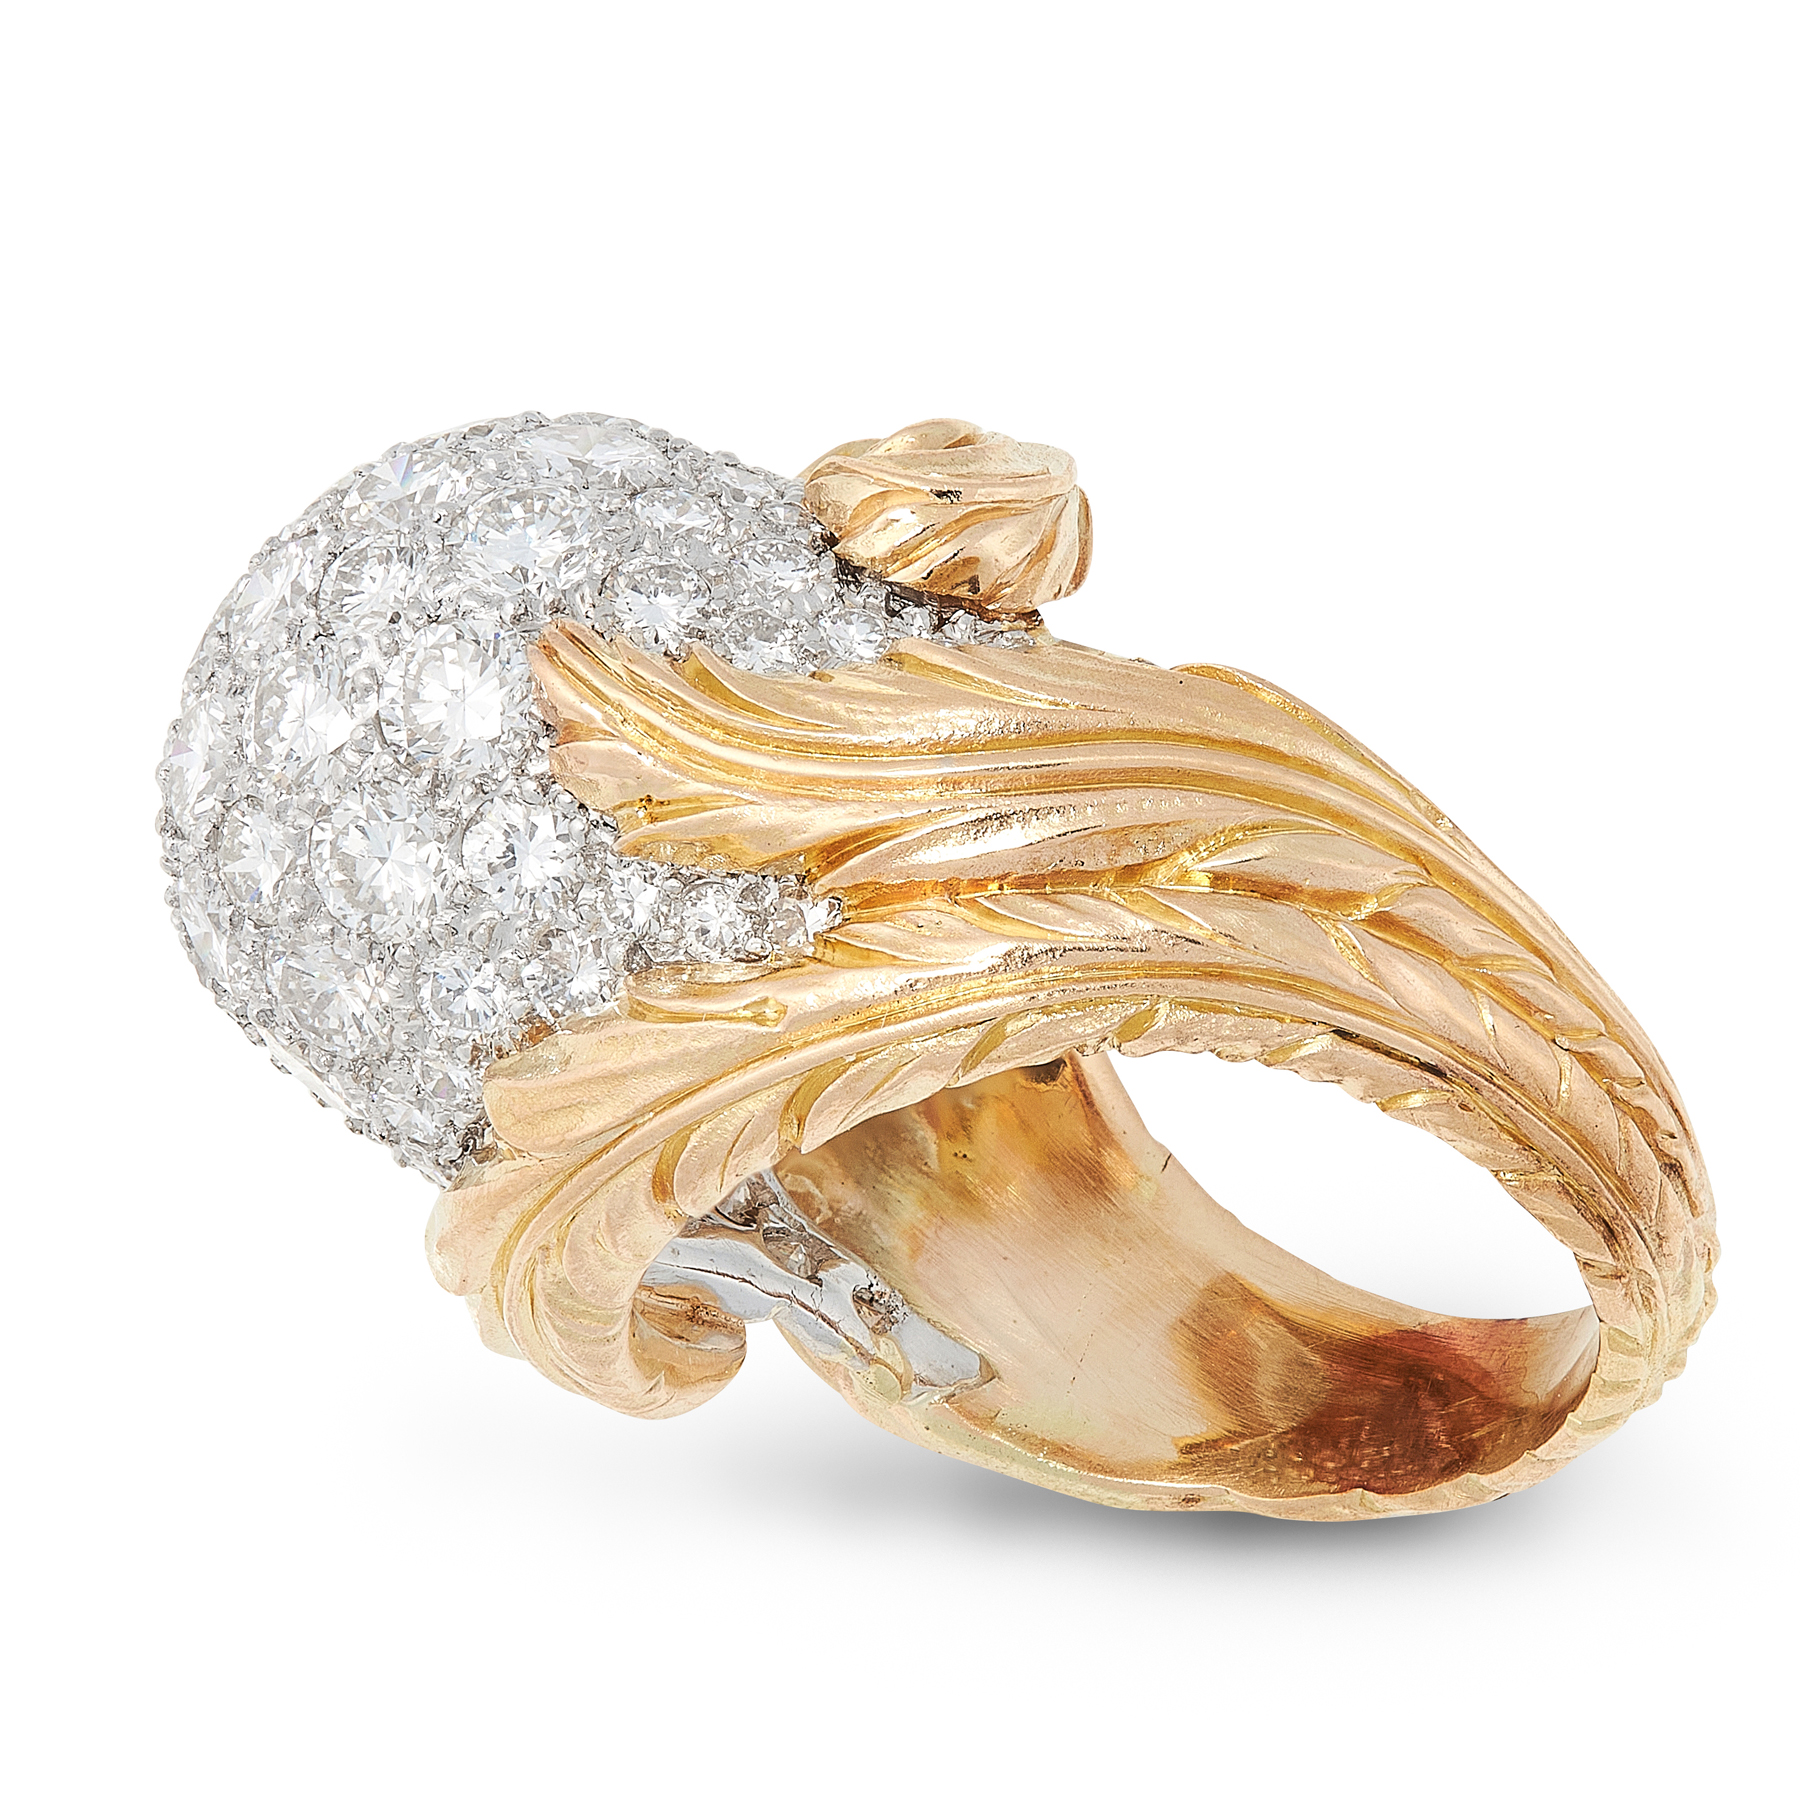 A VINTAGE DIAMOND BOMBE DRESS RING in yellow gold, the central ball motif jewelled allover with - Image 2 of 2